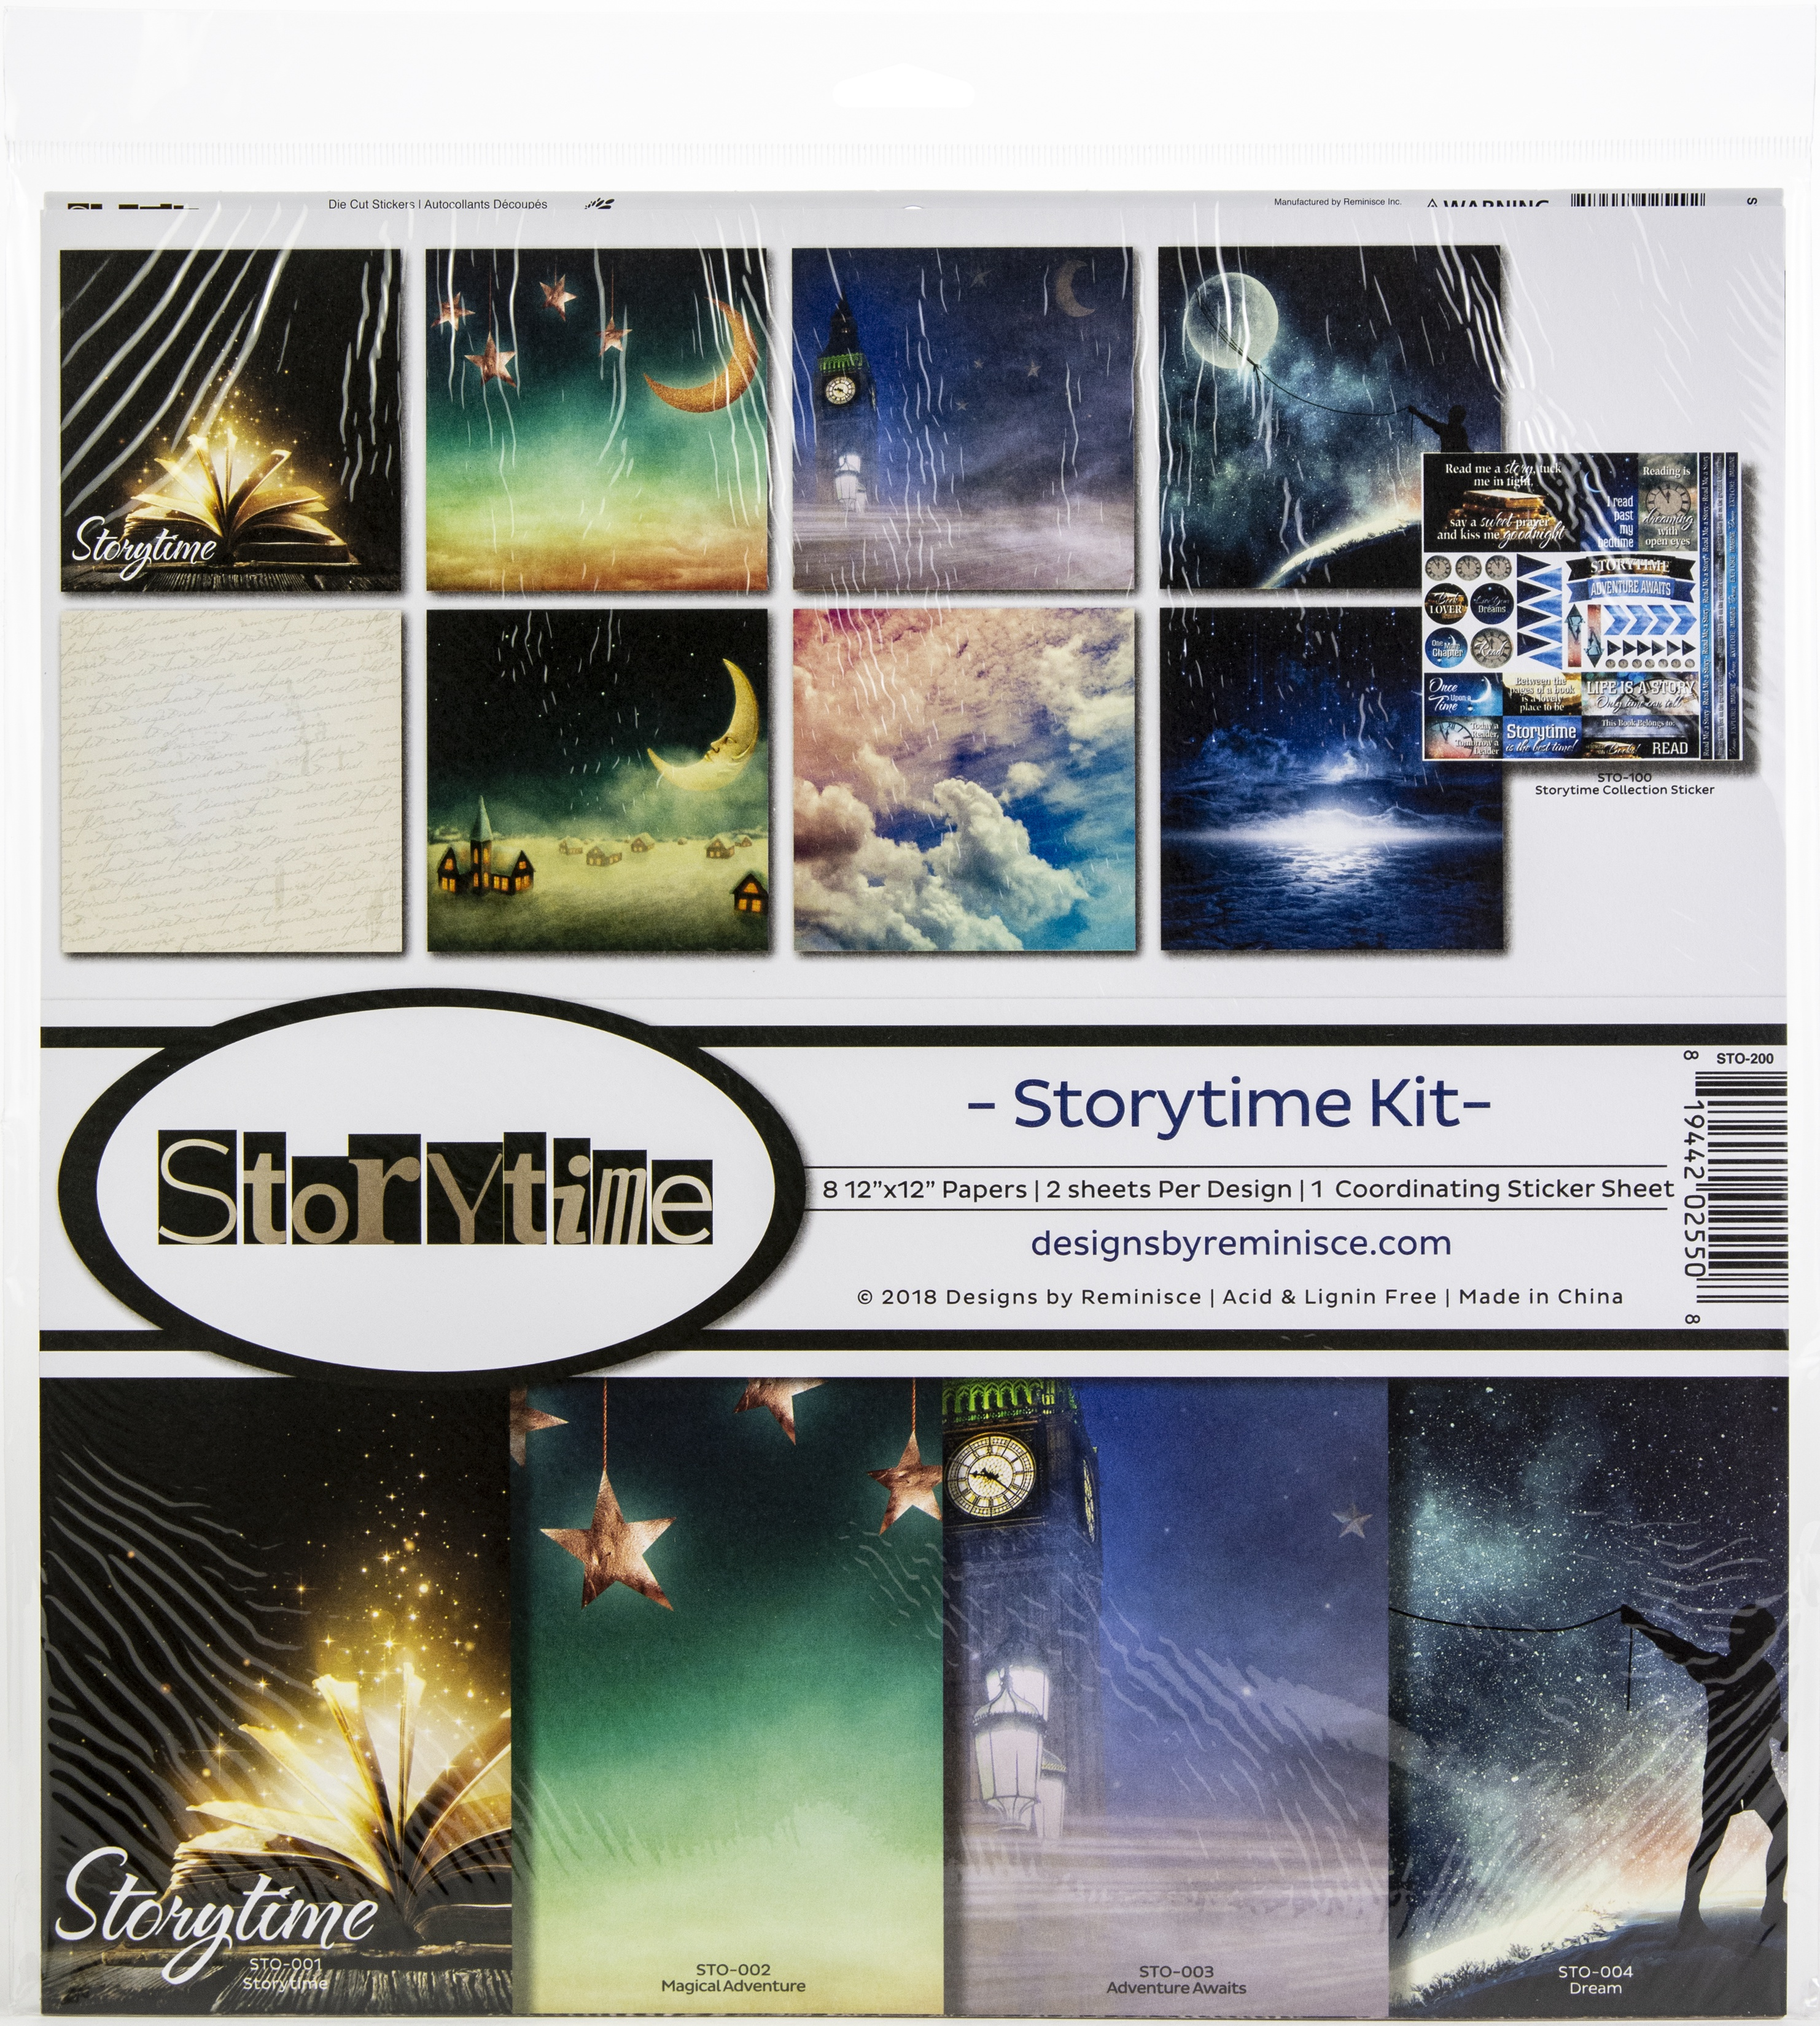 Reminisce Collection Kit 12'x12' - Storytime